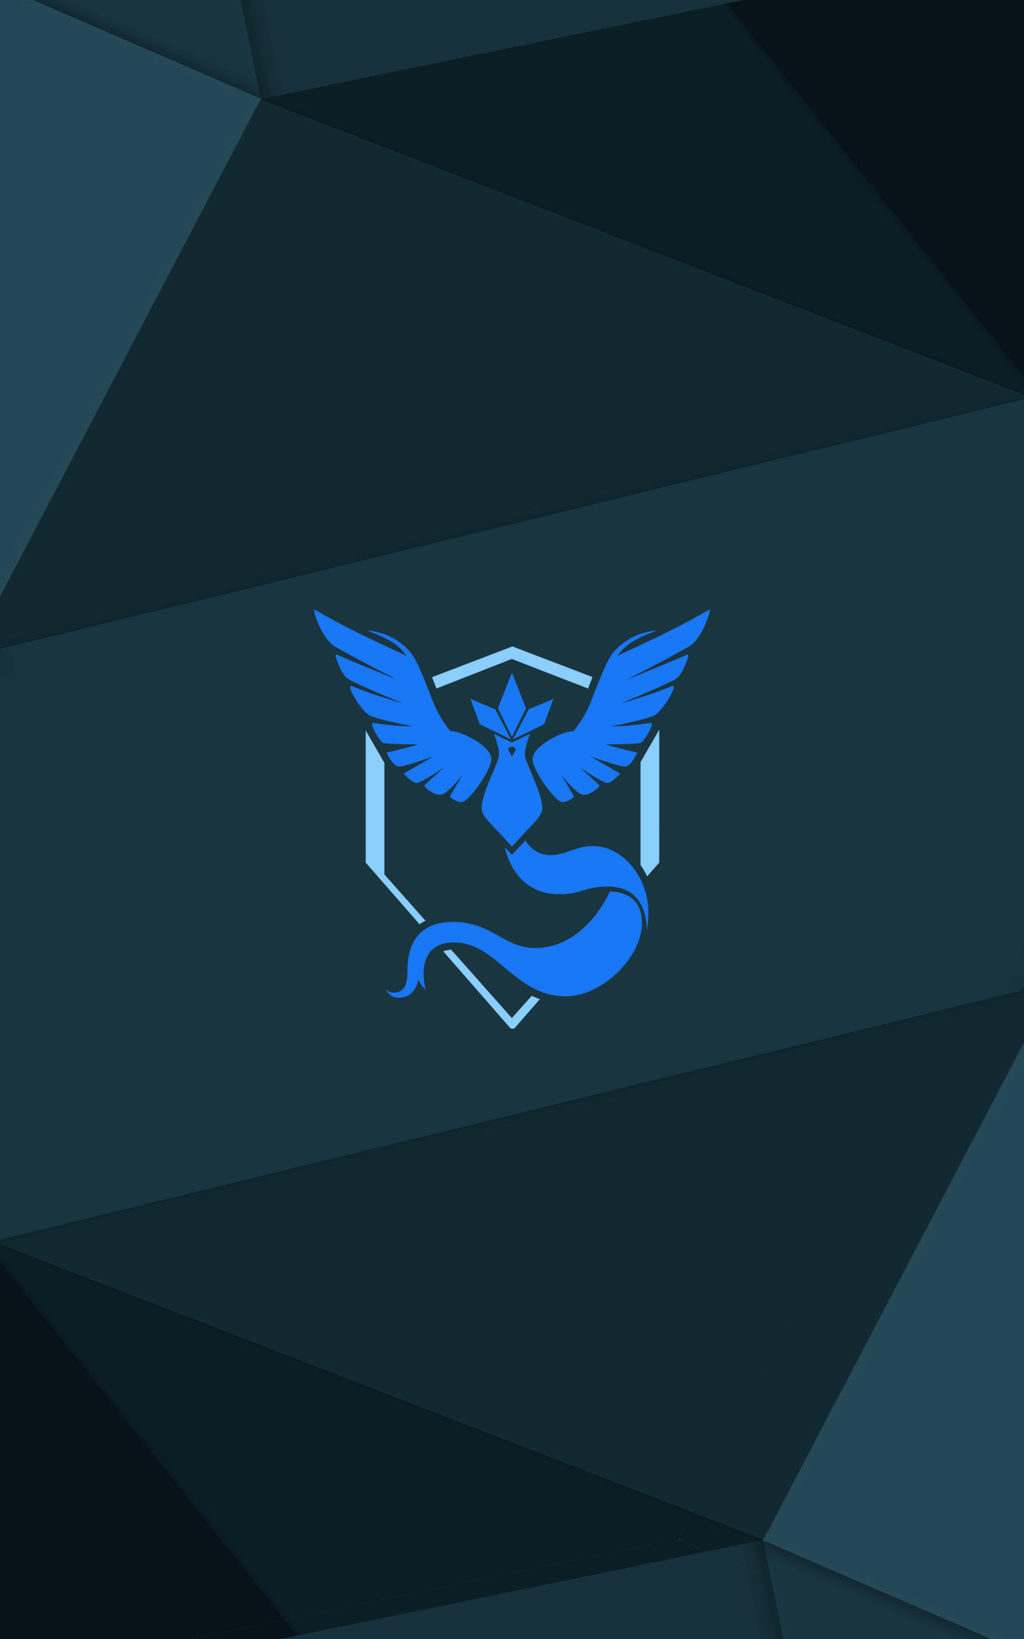 Team Mystic Pokemon Go Wallpaper By Malexer On Deviantart